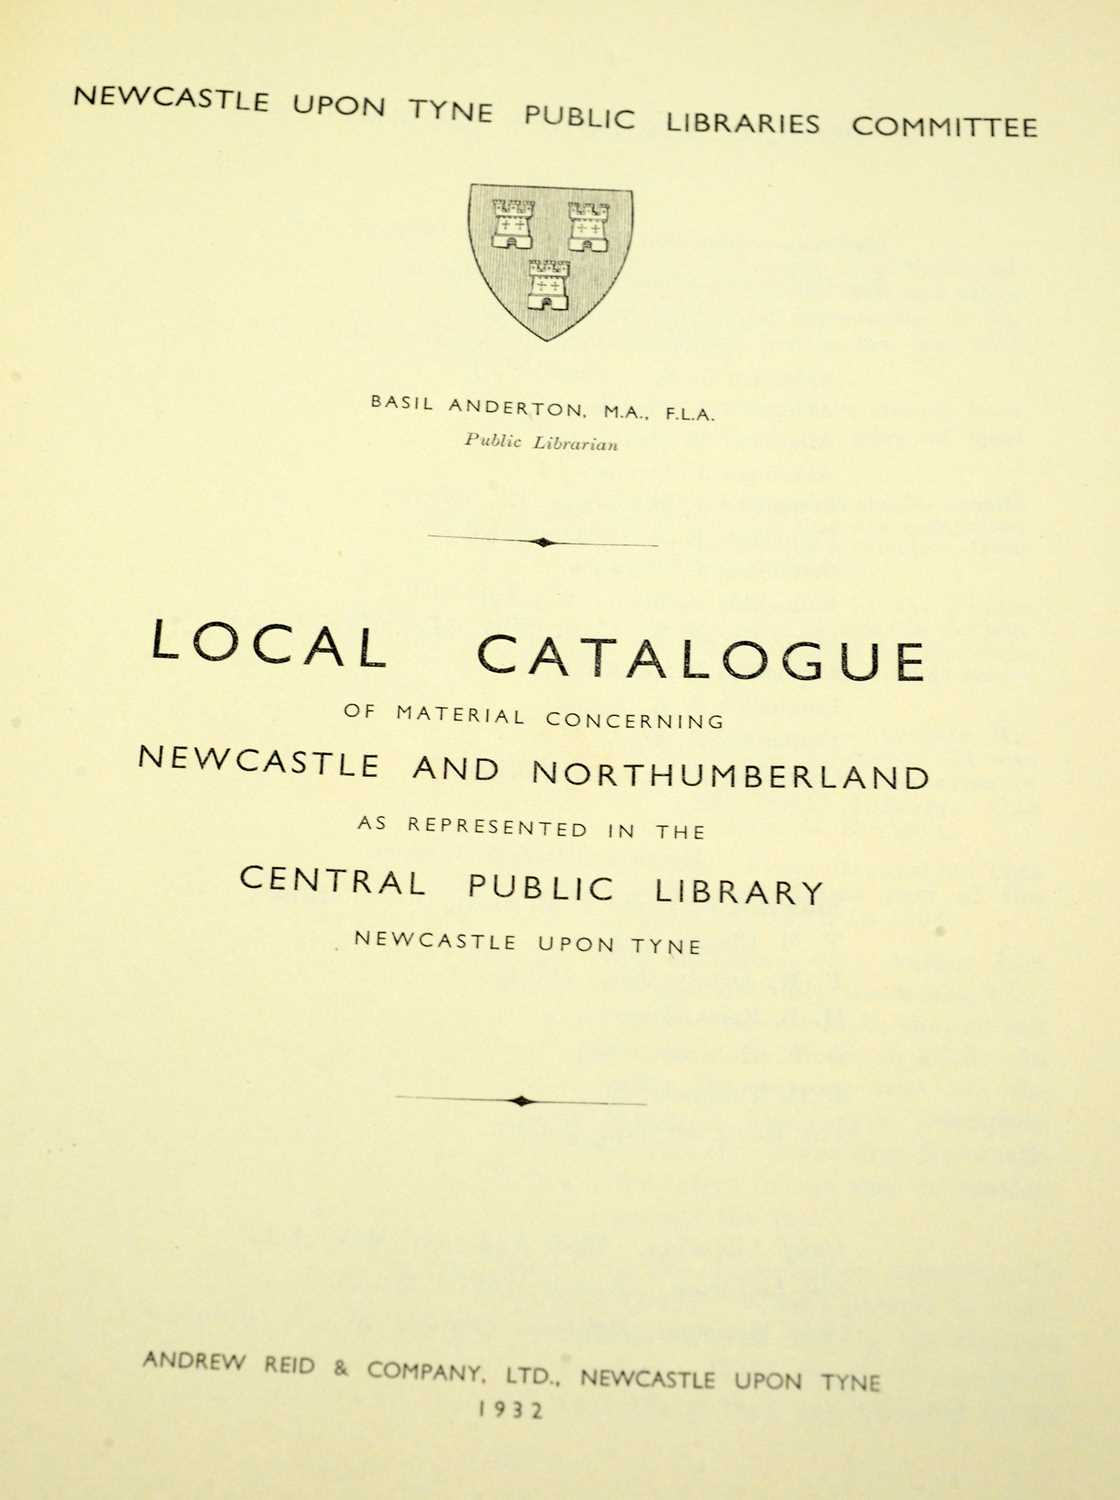 Newcastle upon Tyne Public Libraries Committee. - Image 2 of 2